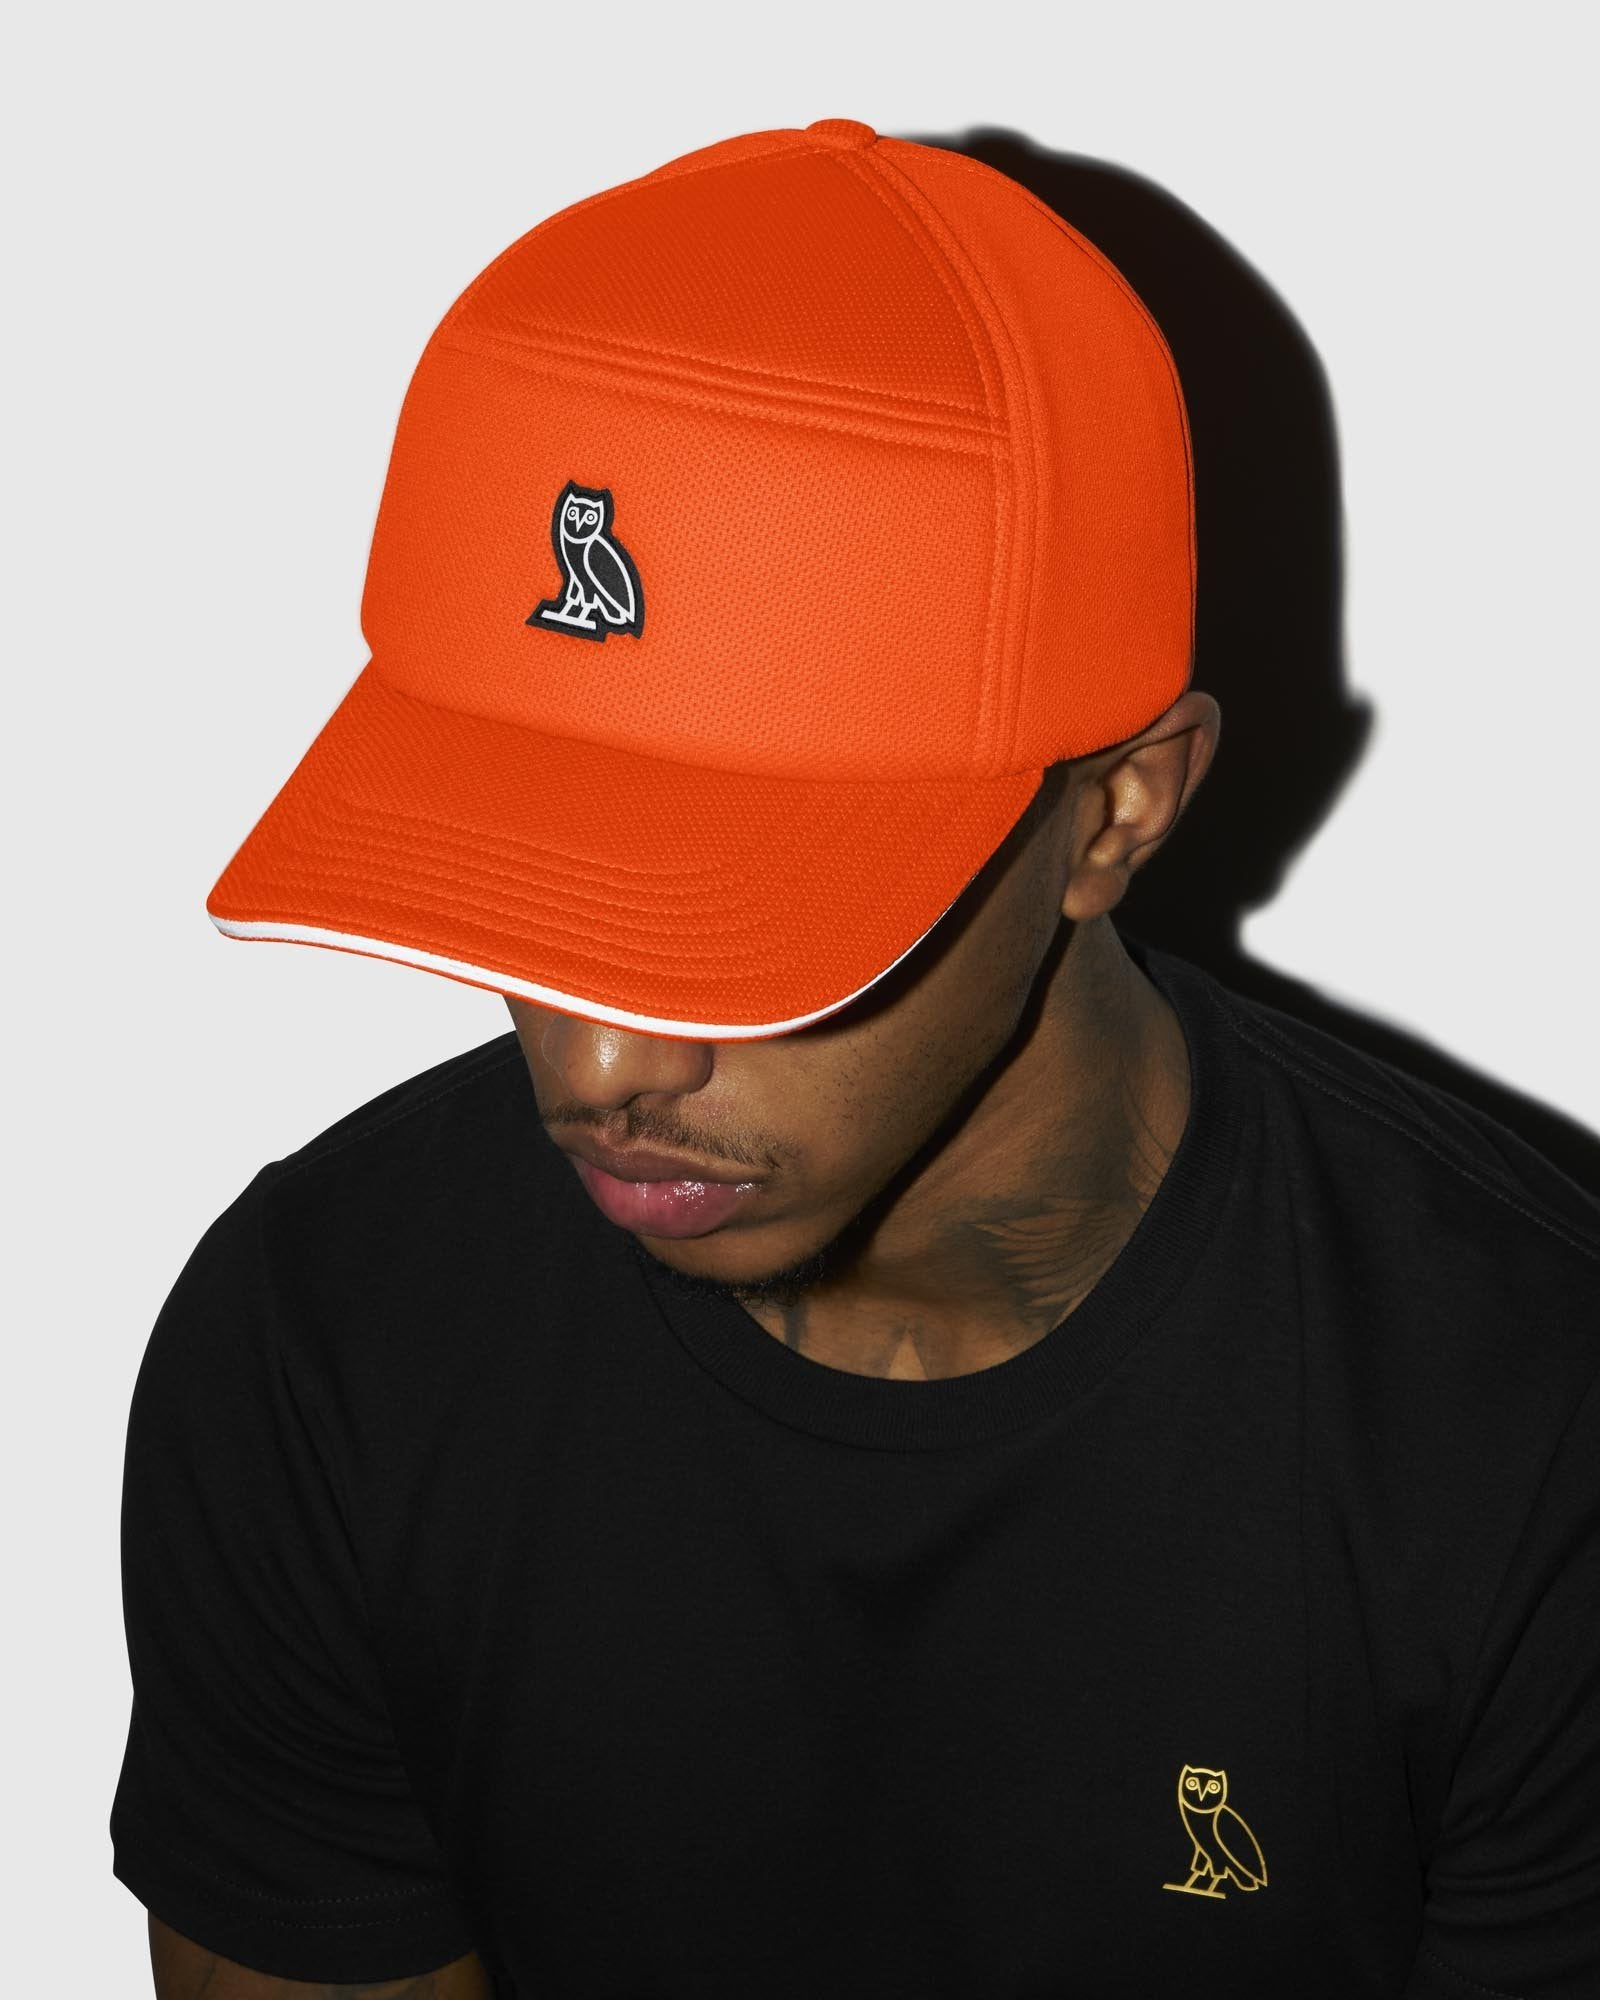 BIRDSEYE 6-PANEL CAP - ORANGE IMAGE #2